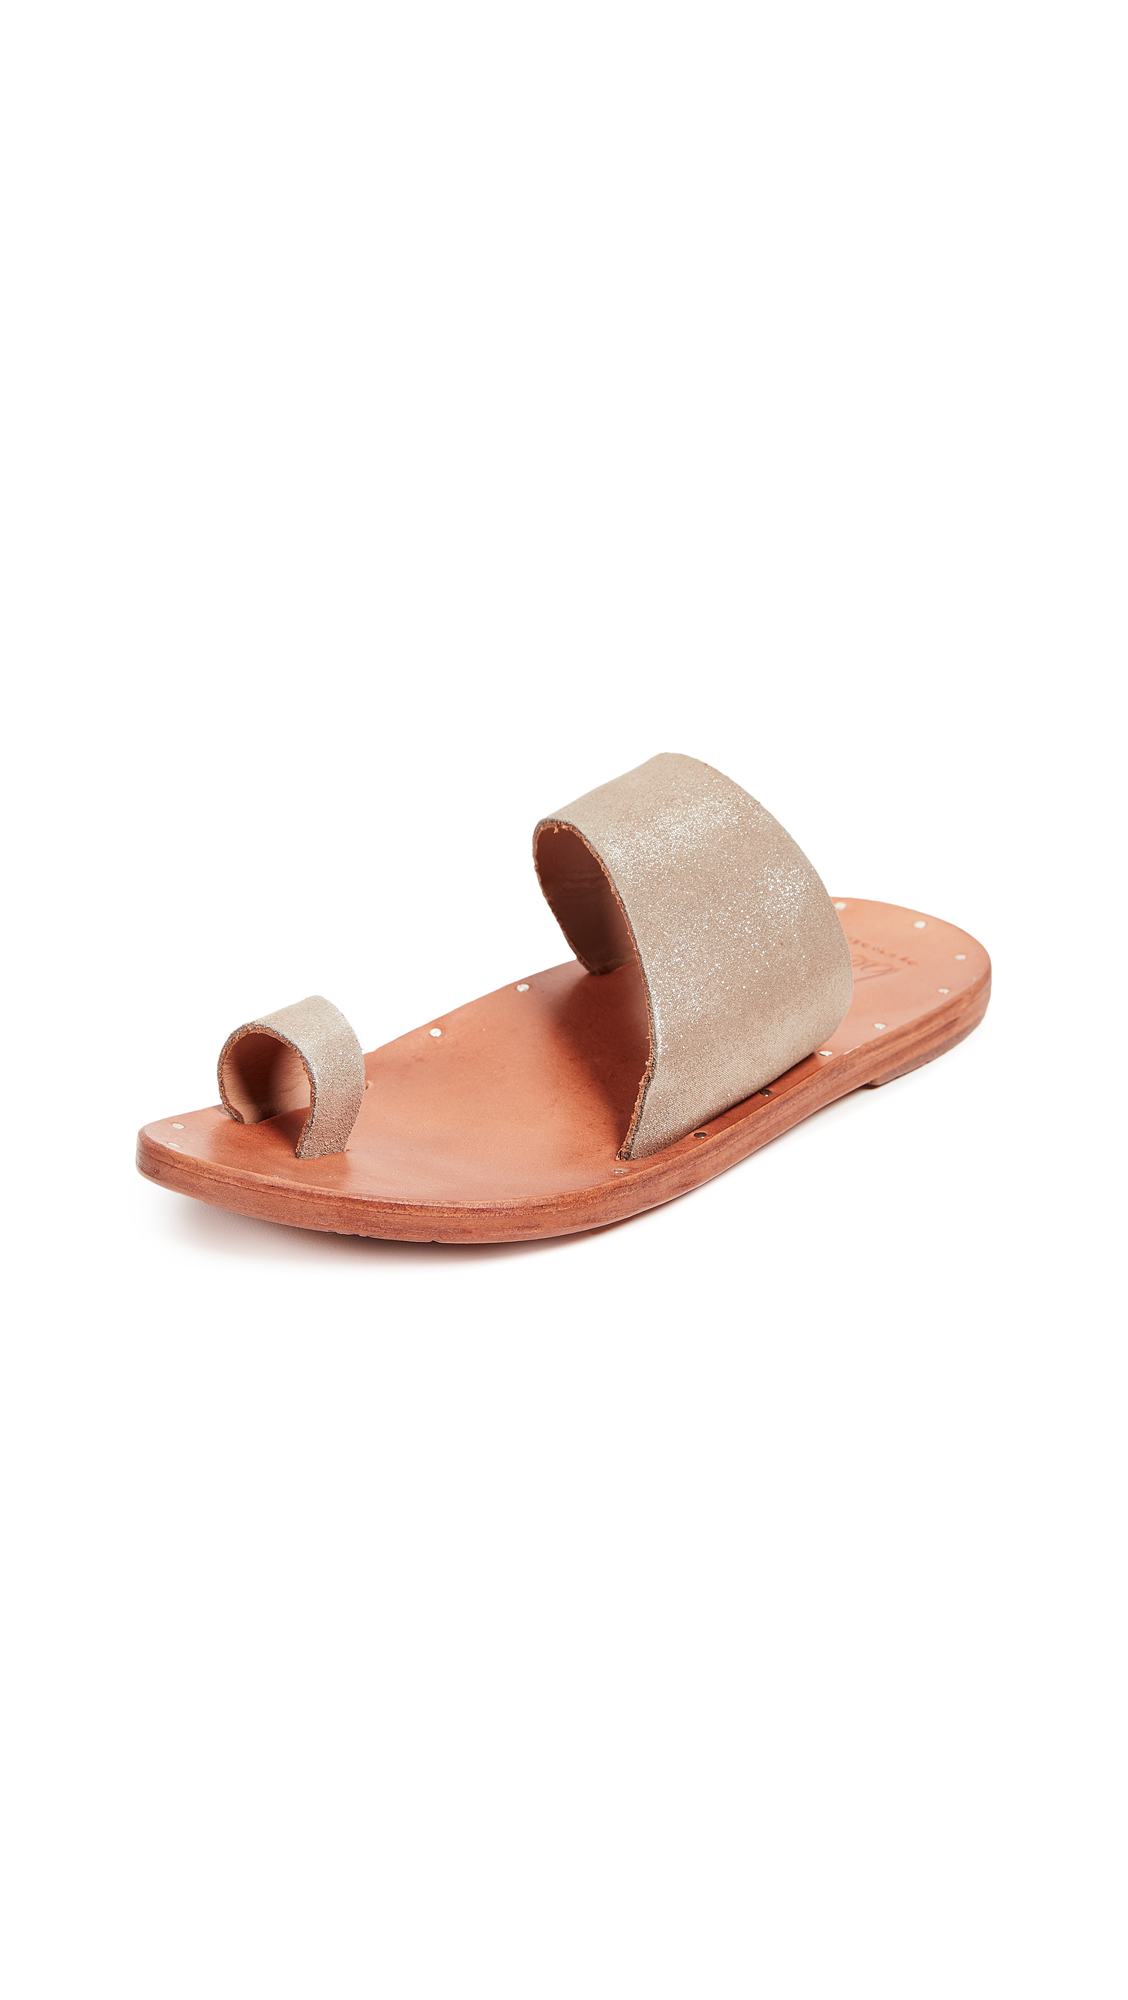 beek Finch Sandals - Quartz/Tan